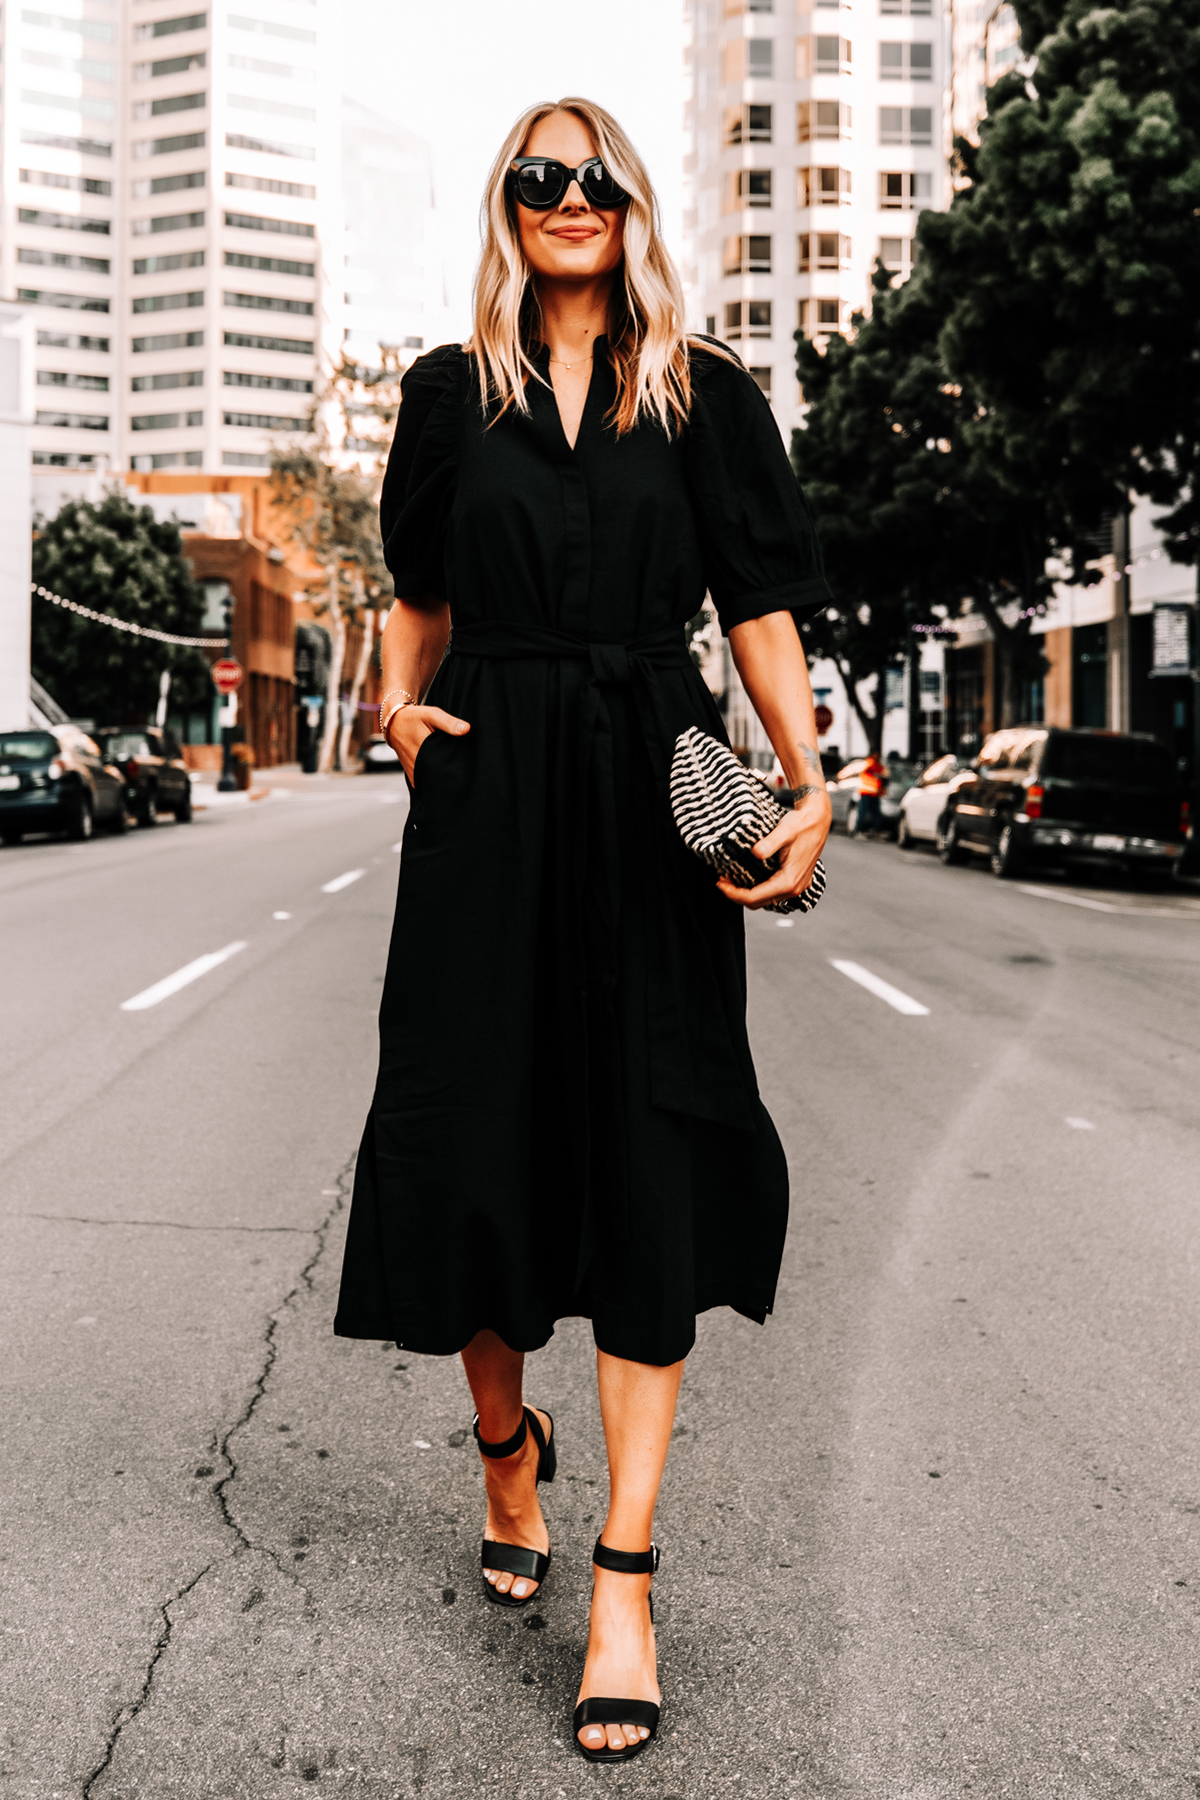 Fashion Jackson Wearing Ann Taylor Black Shirt Dress Black Heeled Sandals Black Tan Woven Clutch 1